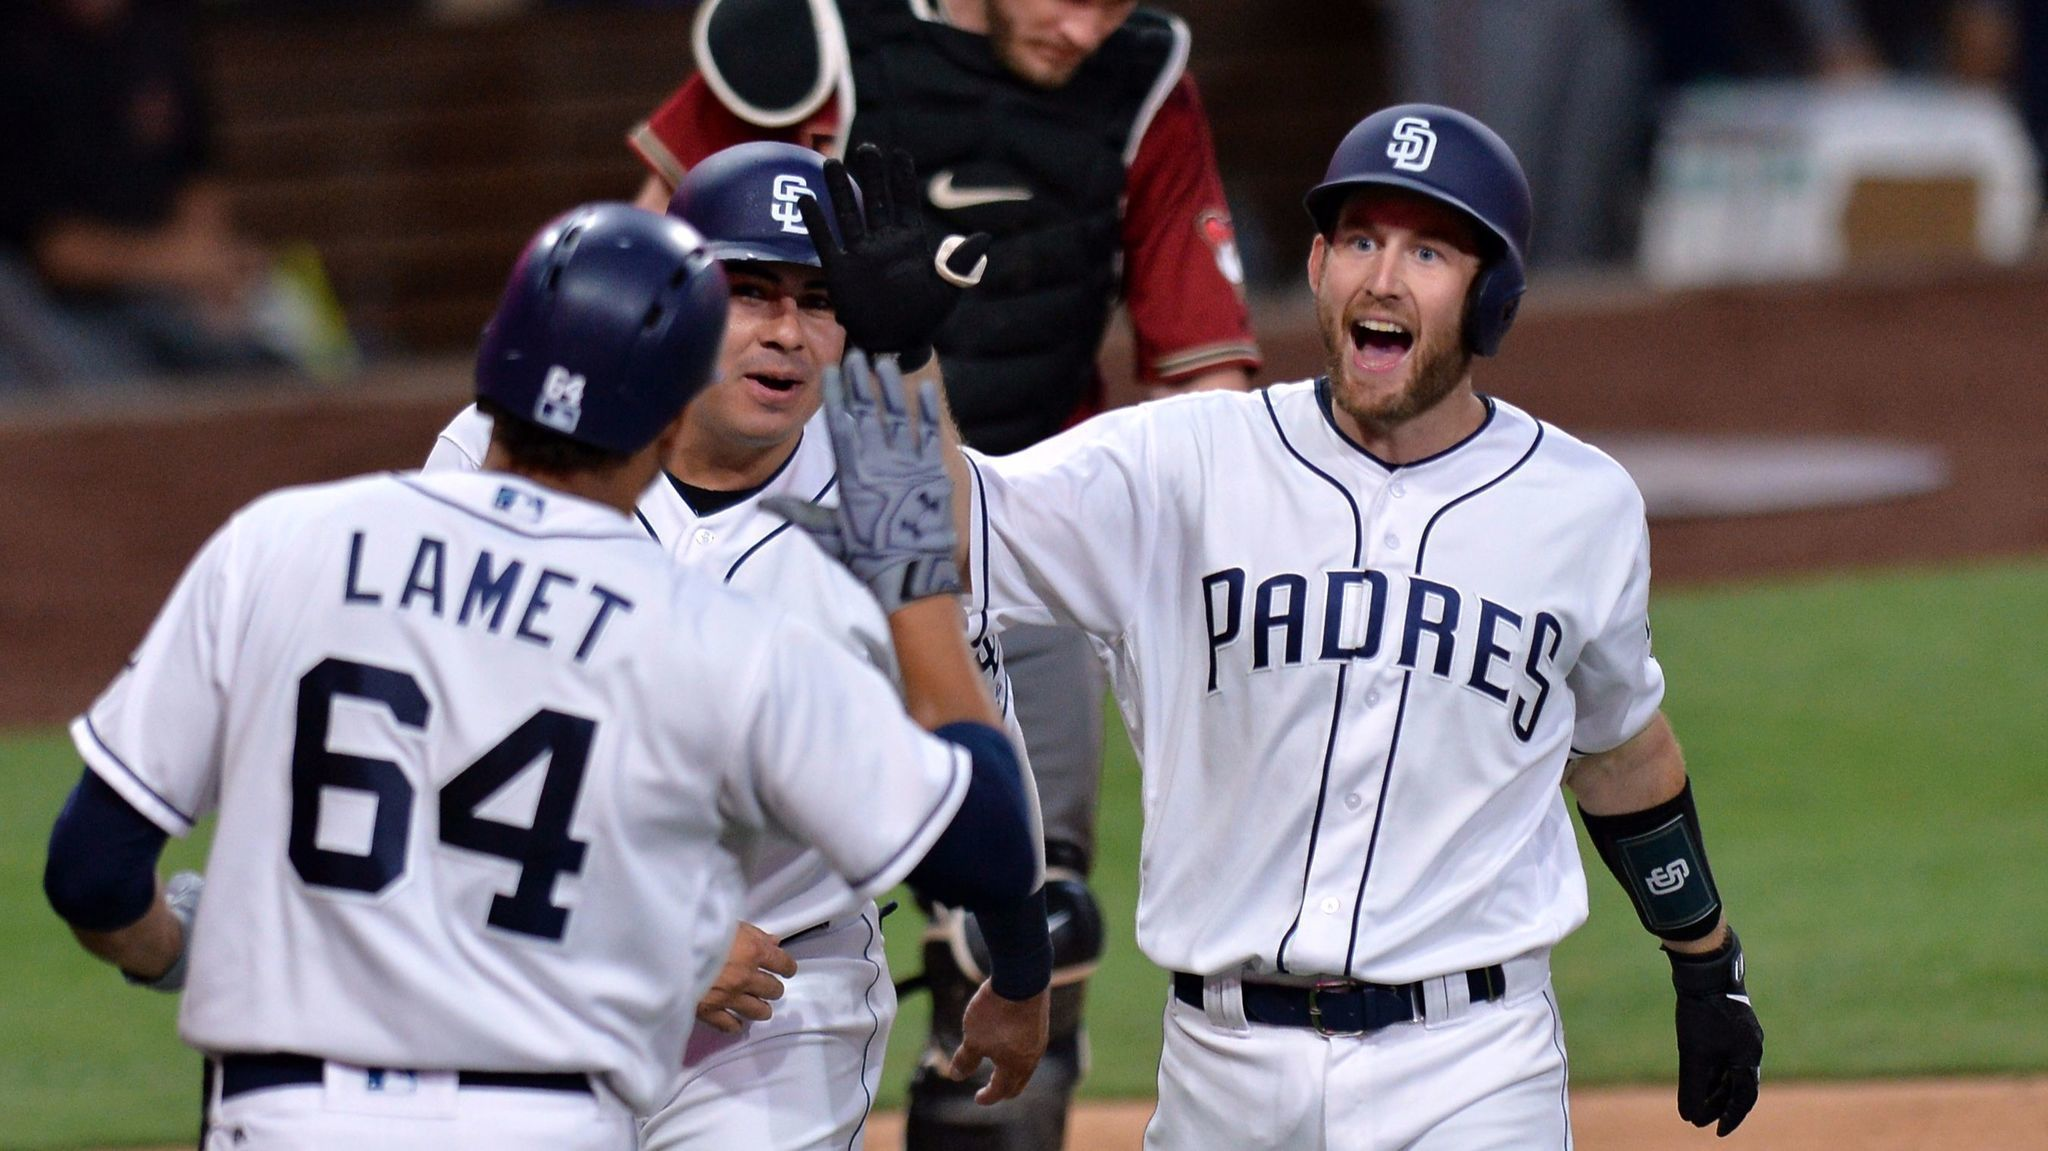 Sd-sp-padres-first-pitch-rocky-gale-20170920